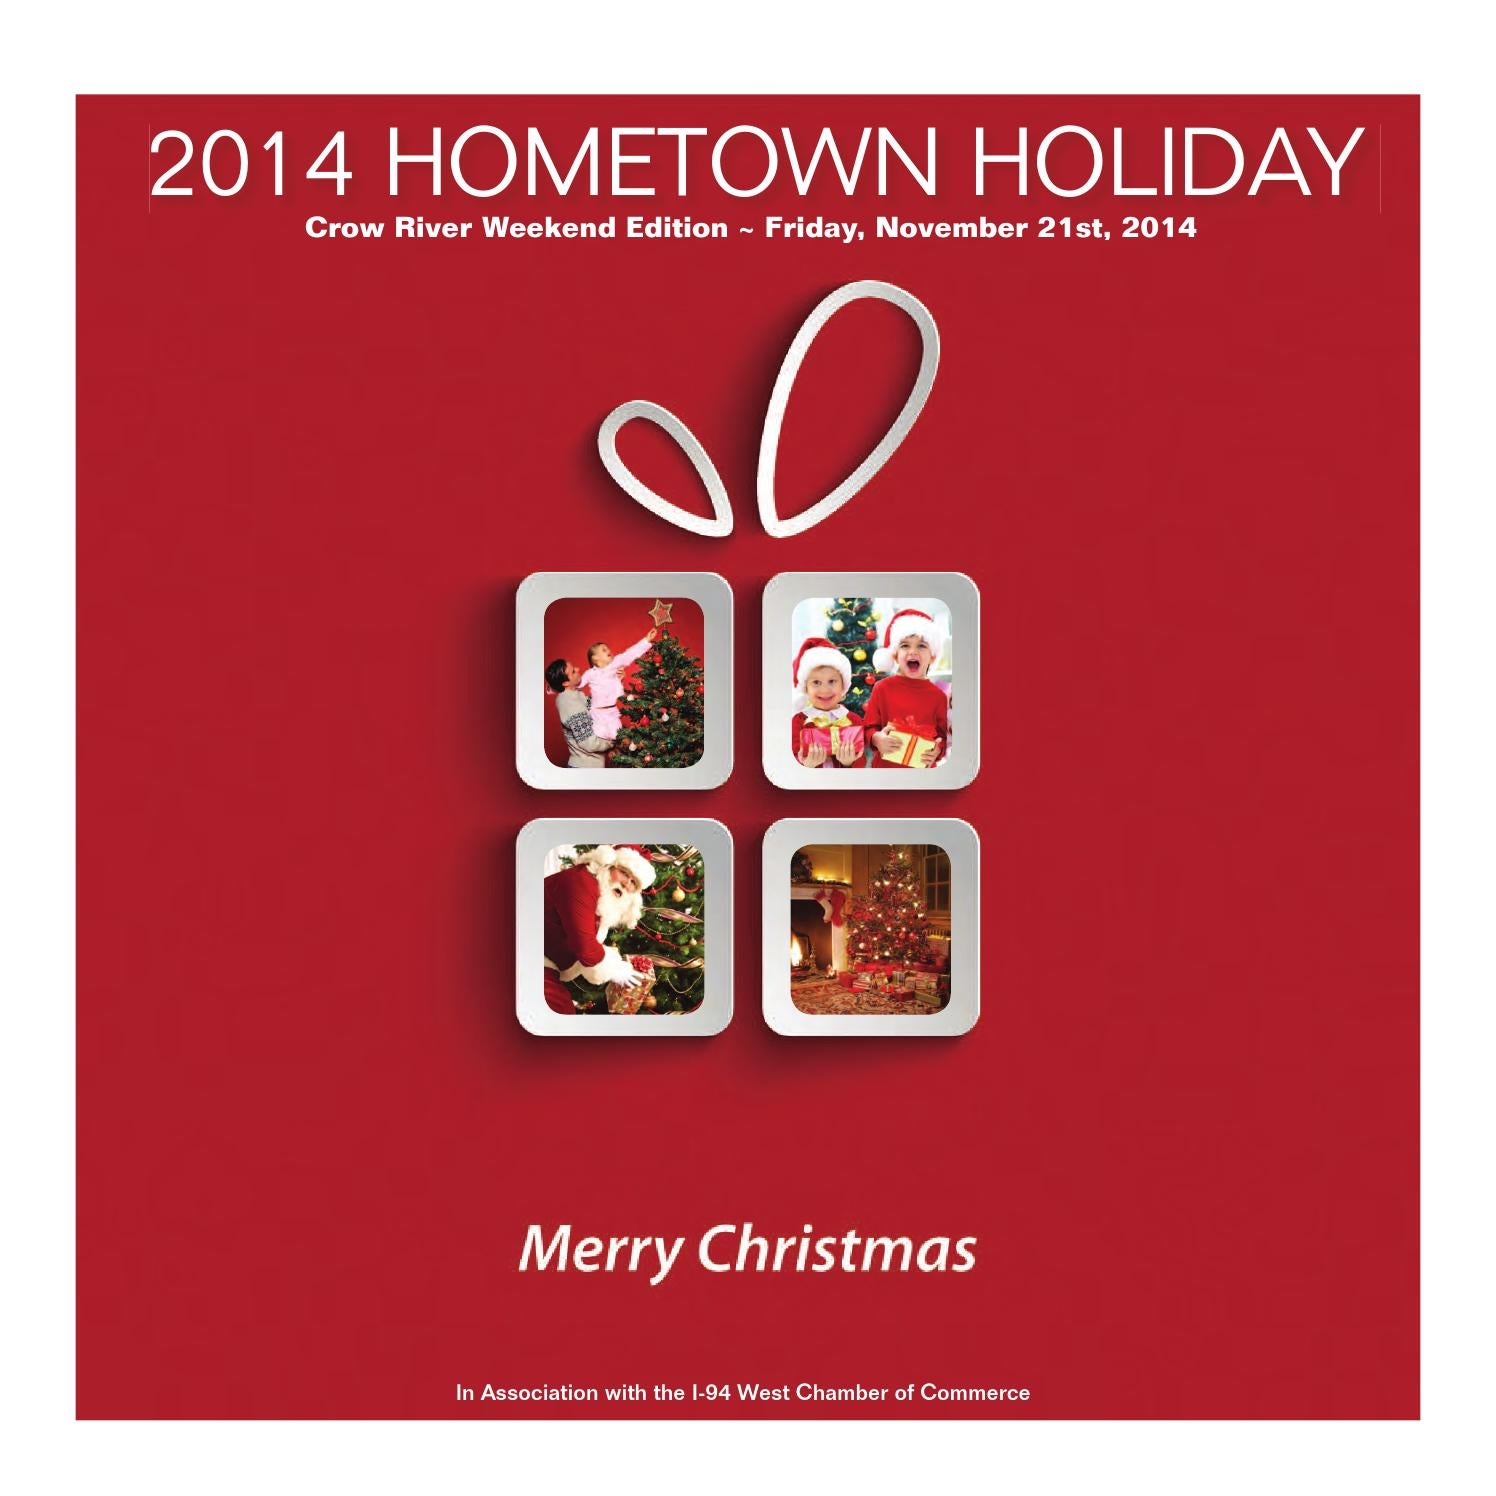 2014 Hometown Holiday by Sun Newspapers issuu